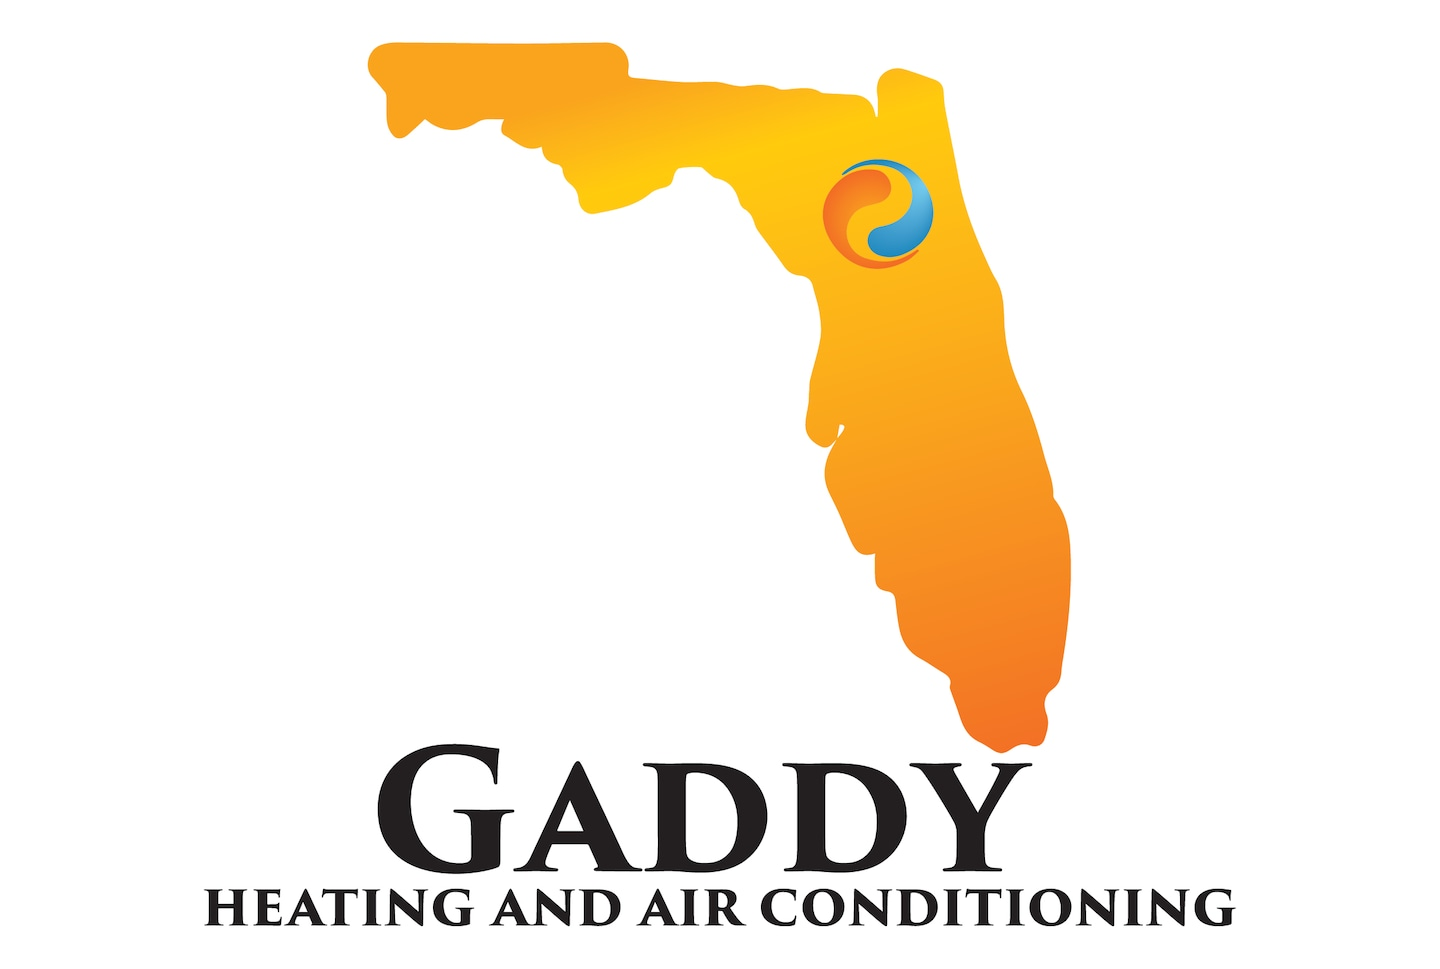 Gaddy Heating And Air Conditioning